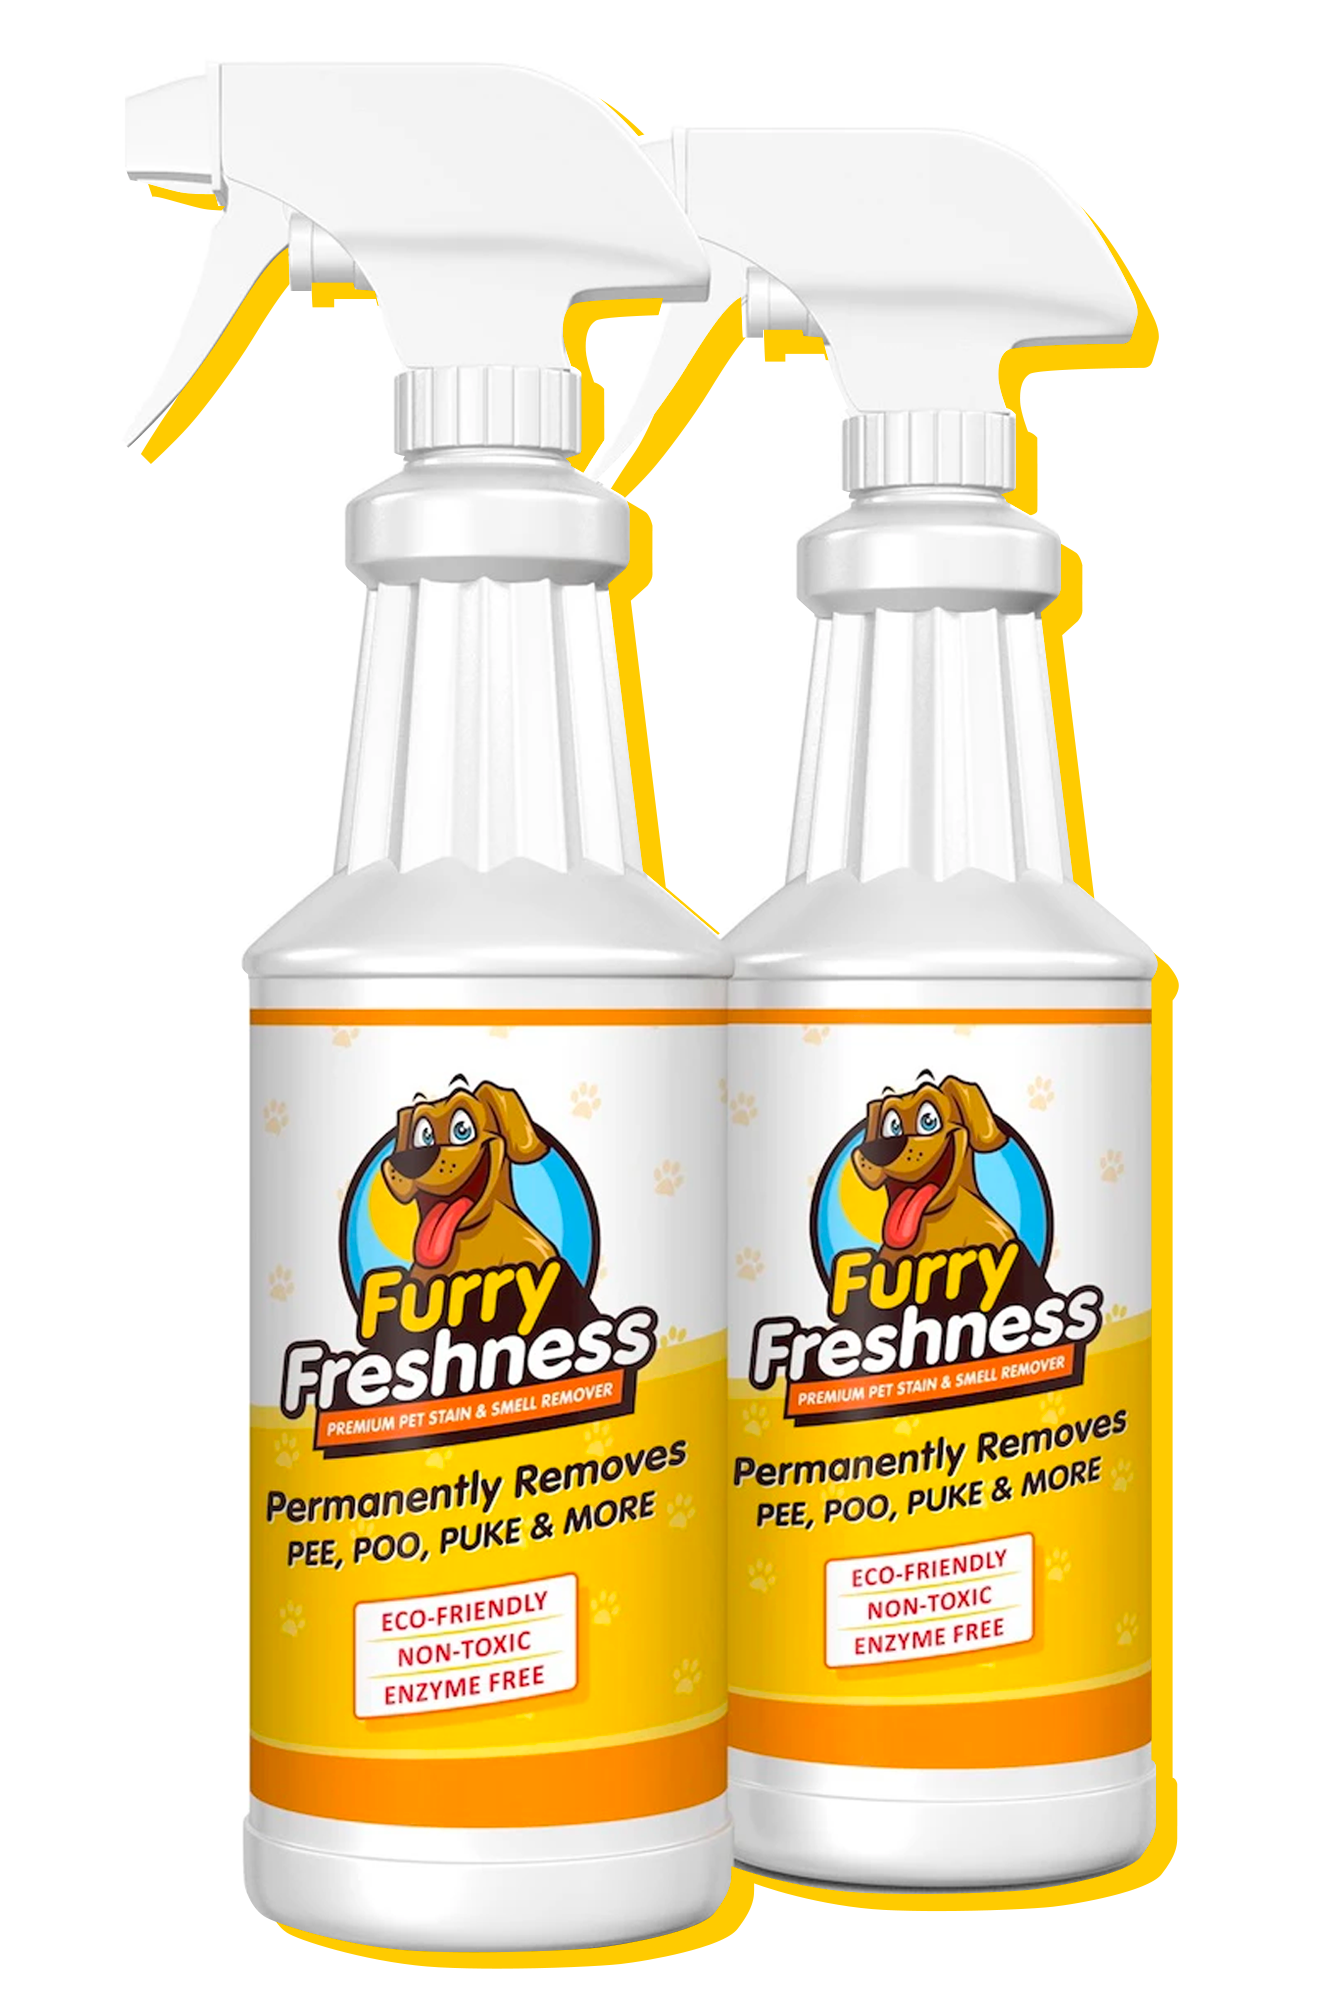 FurryFreshness 32oz Bottle 2 Pack - Giveaway Special